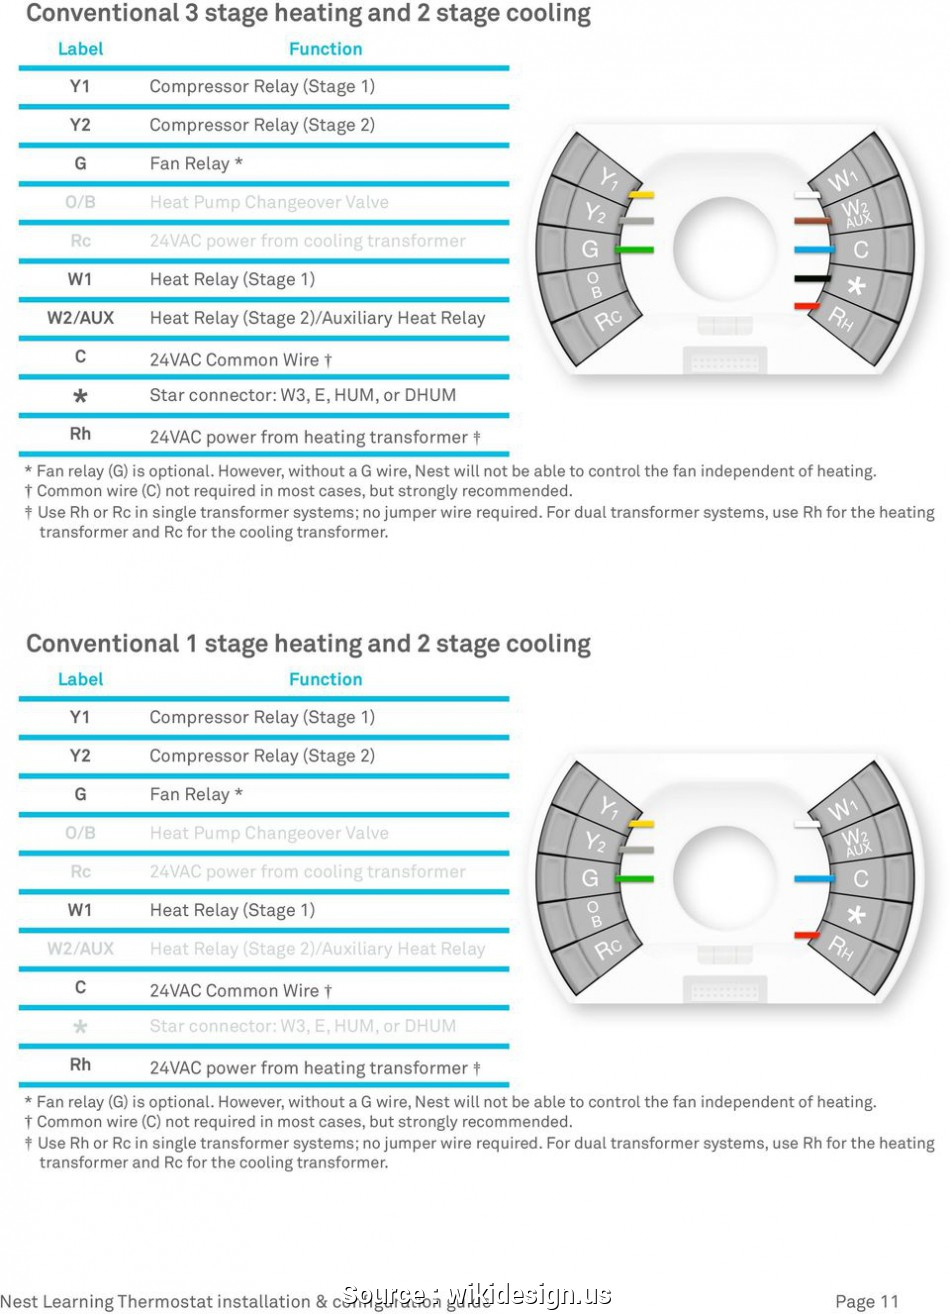 24Vac Thermostat Wiring Diagrams | Wiring Library - Nest Thermostat Wiring Diagram With Transformer And Relay For Swamp Cooler